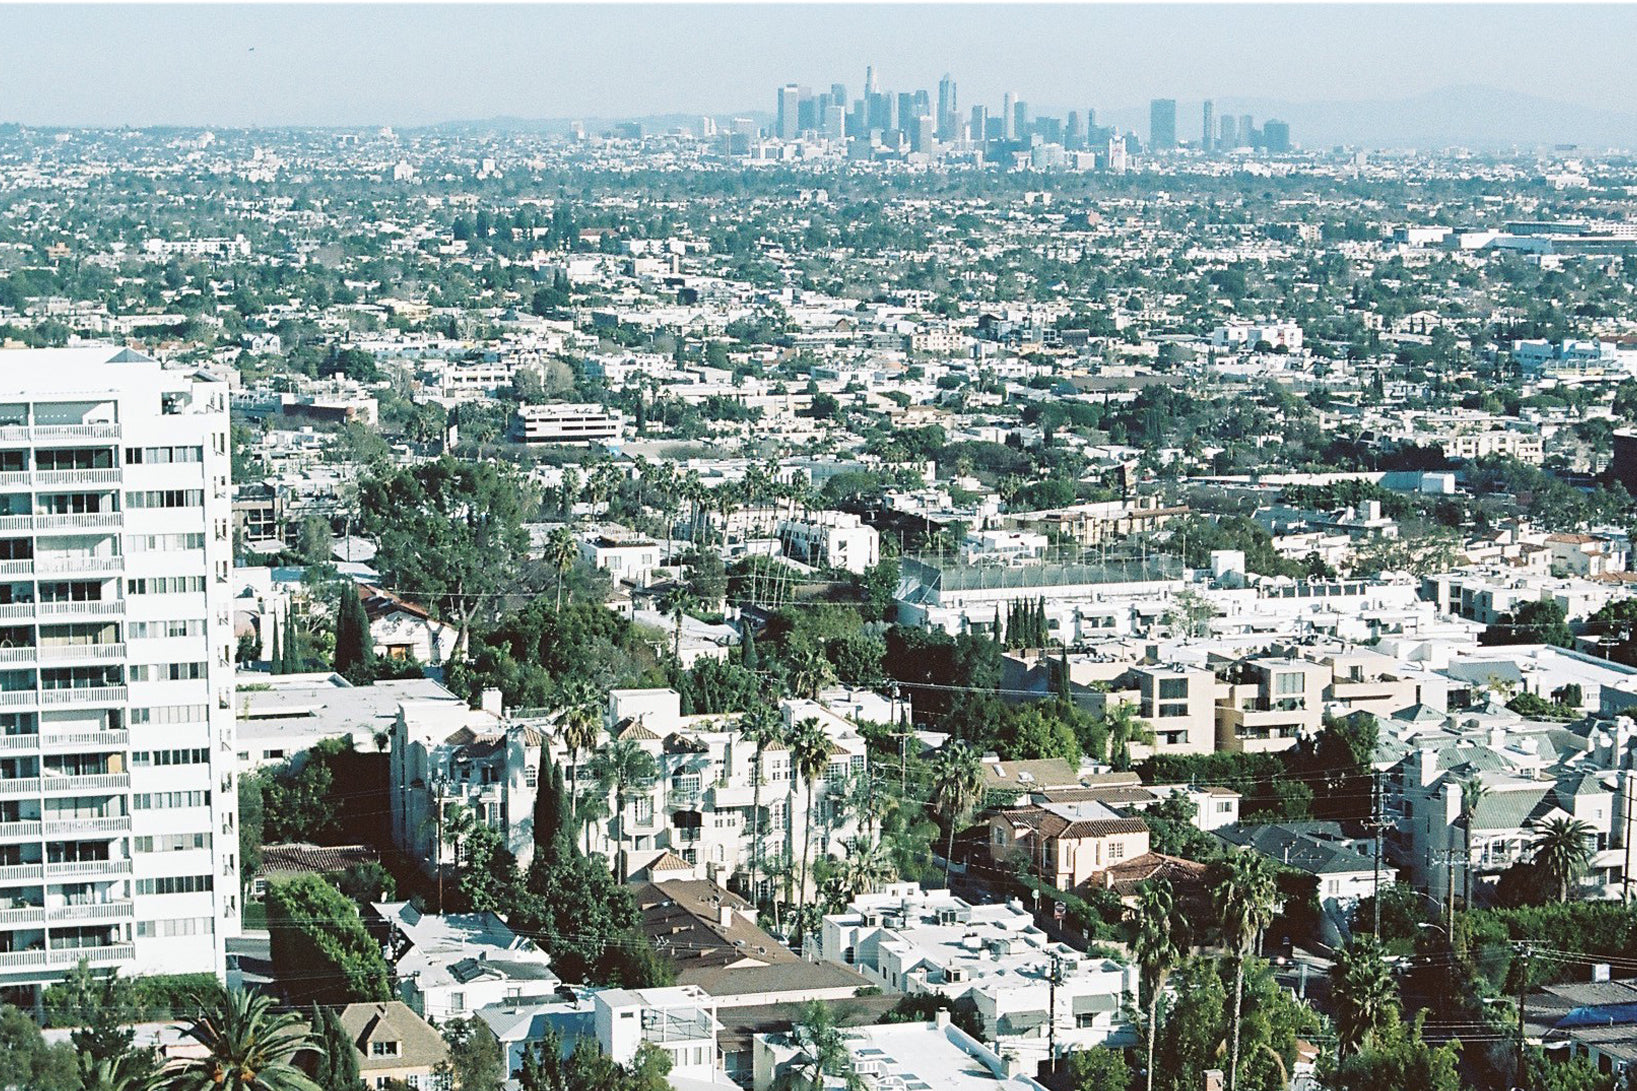 DISPATCH 001 - LOS ANGELES, CALIFORNIA